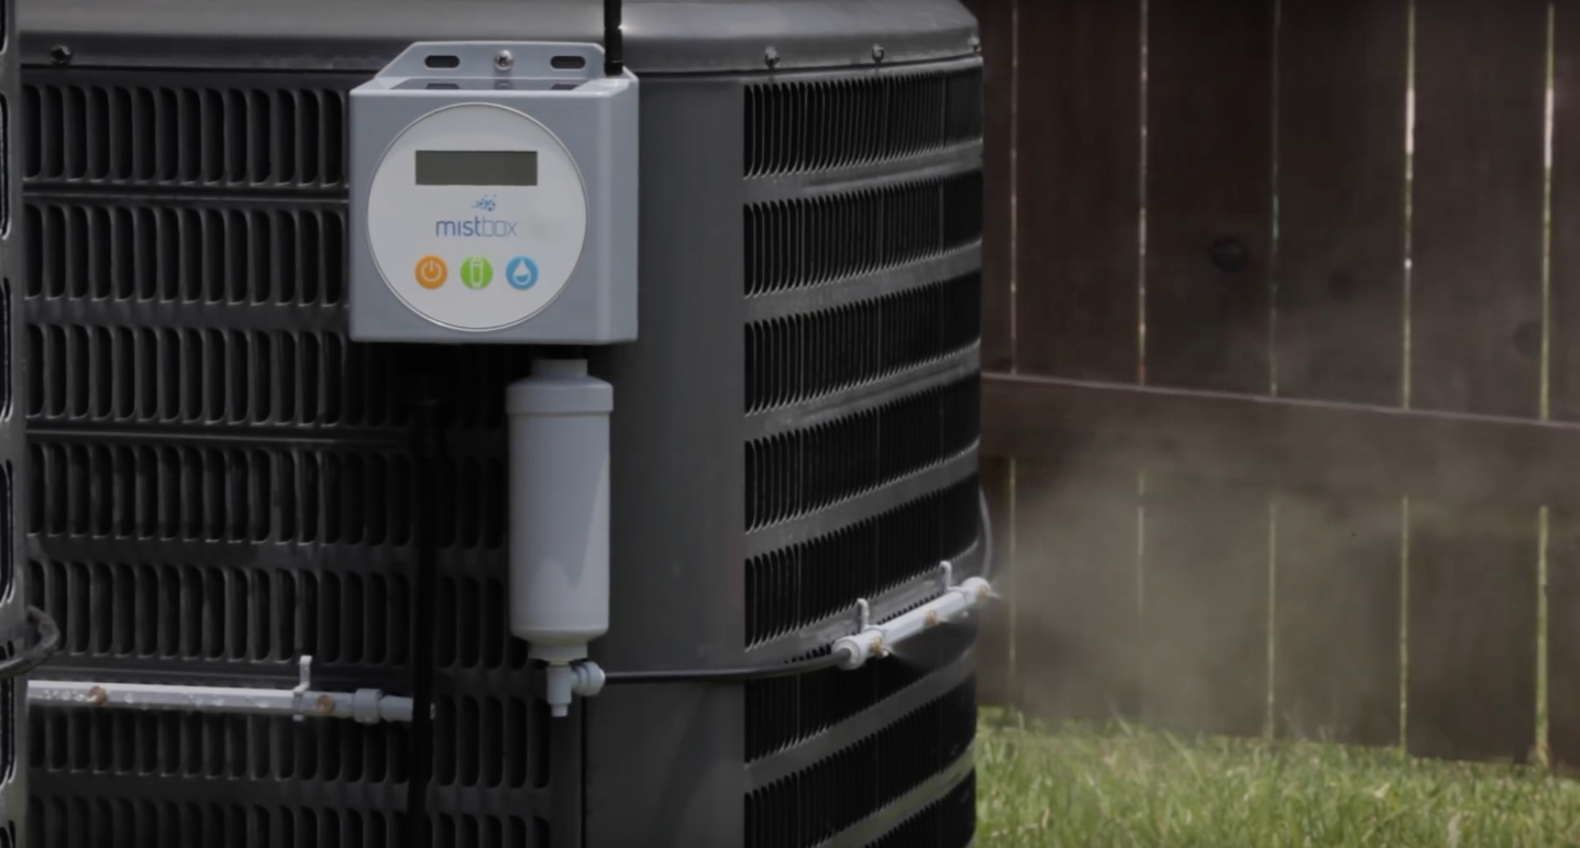 Solar-powered Mistbox slashes summer cooling costs